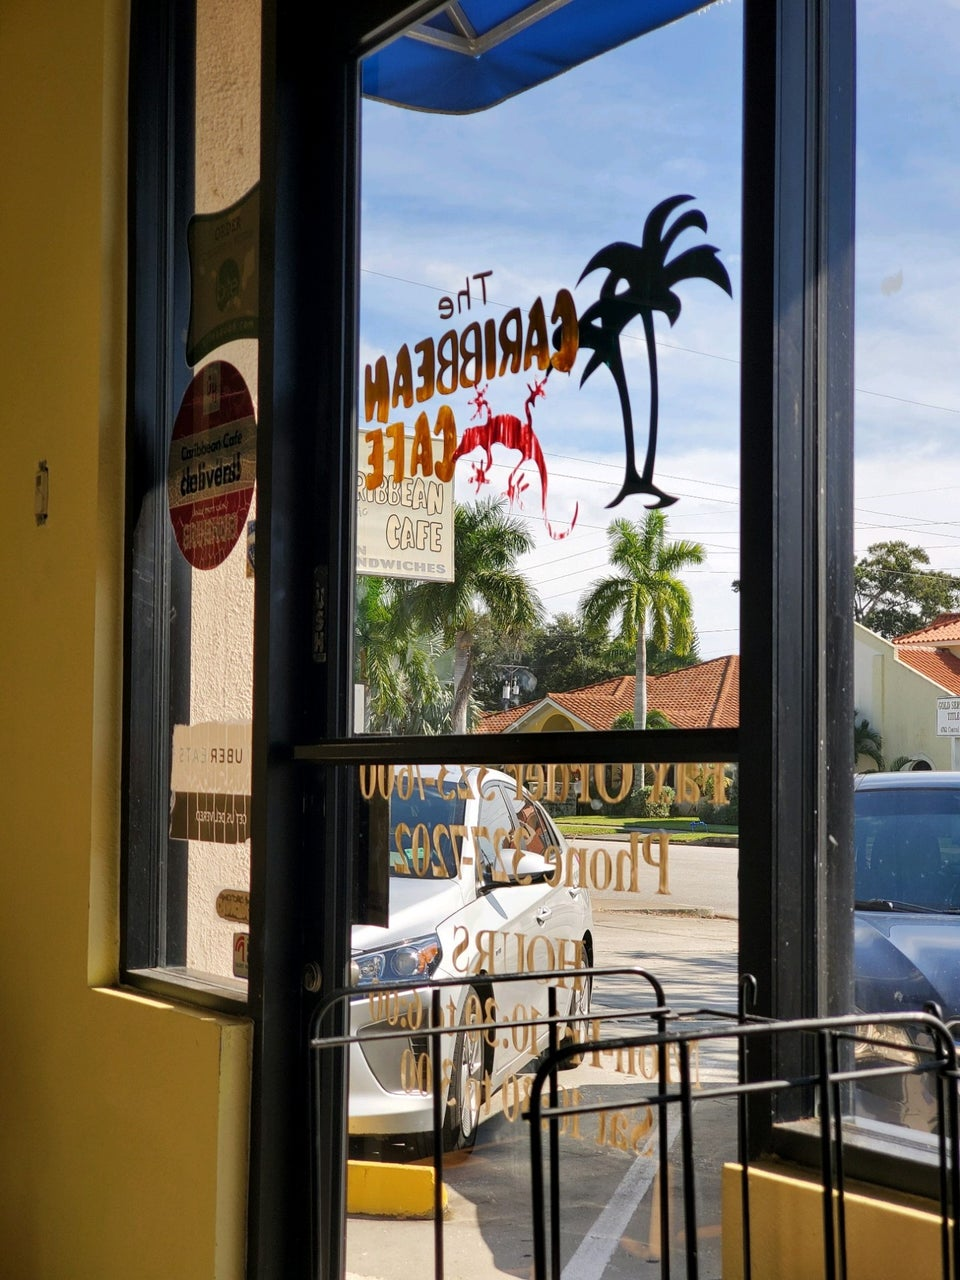 Caribbean Cafe 4801 Central Ave, St. Petersburg